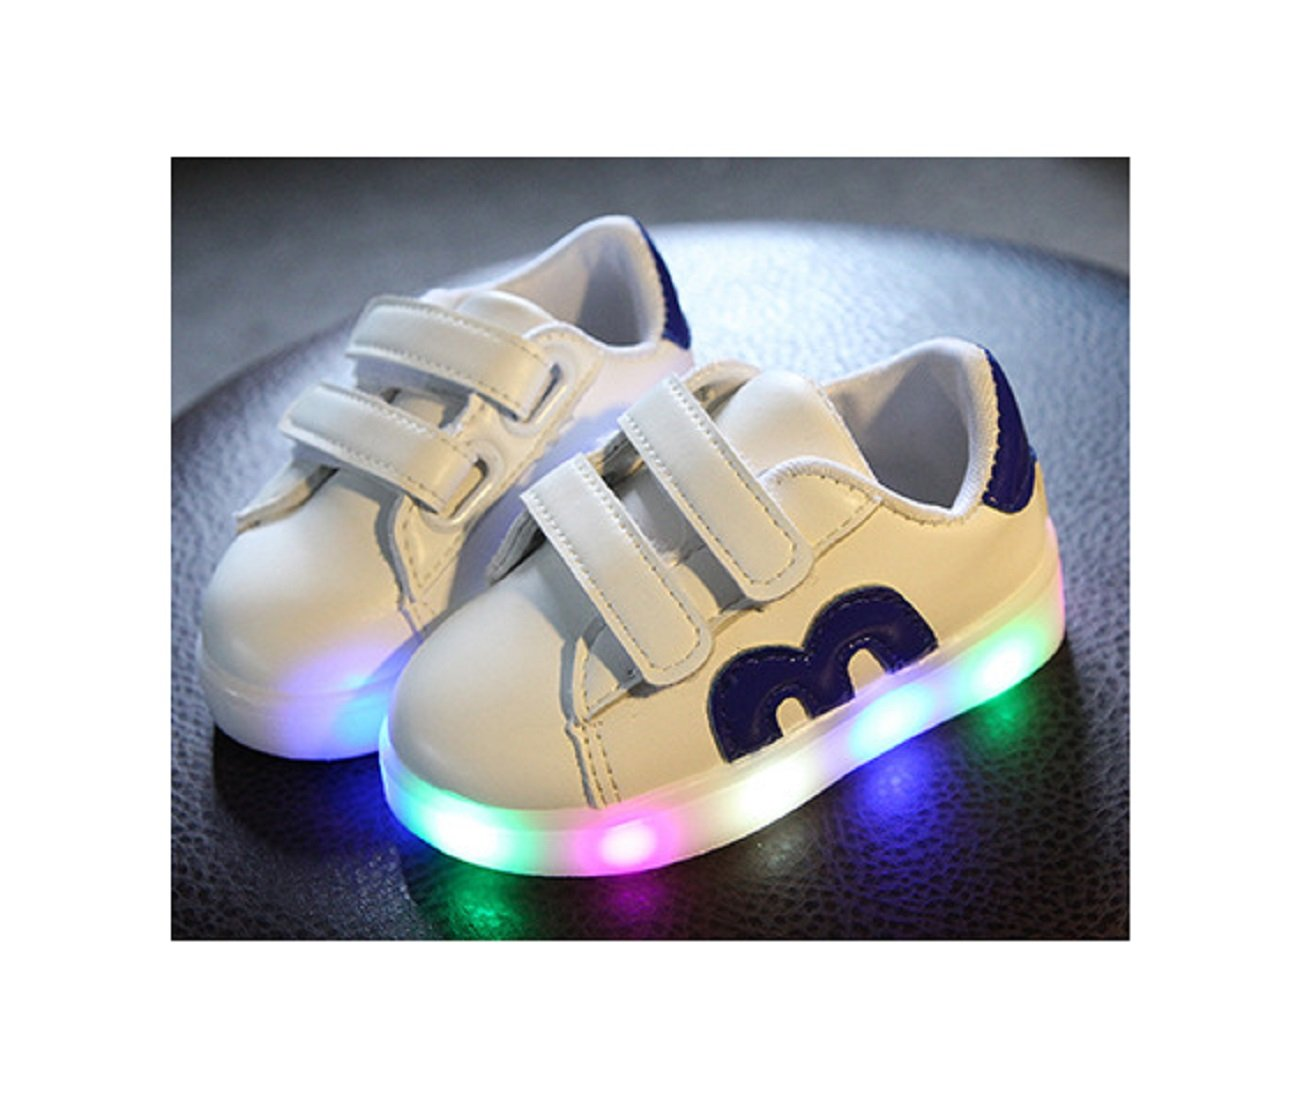 Kids Shoes 2017 With Light Boys Girls Sports Shoes LED Lighted Flash Male Female Sneakers Baby Fashion Sneakers Shining Boots 11, Blue